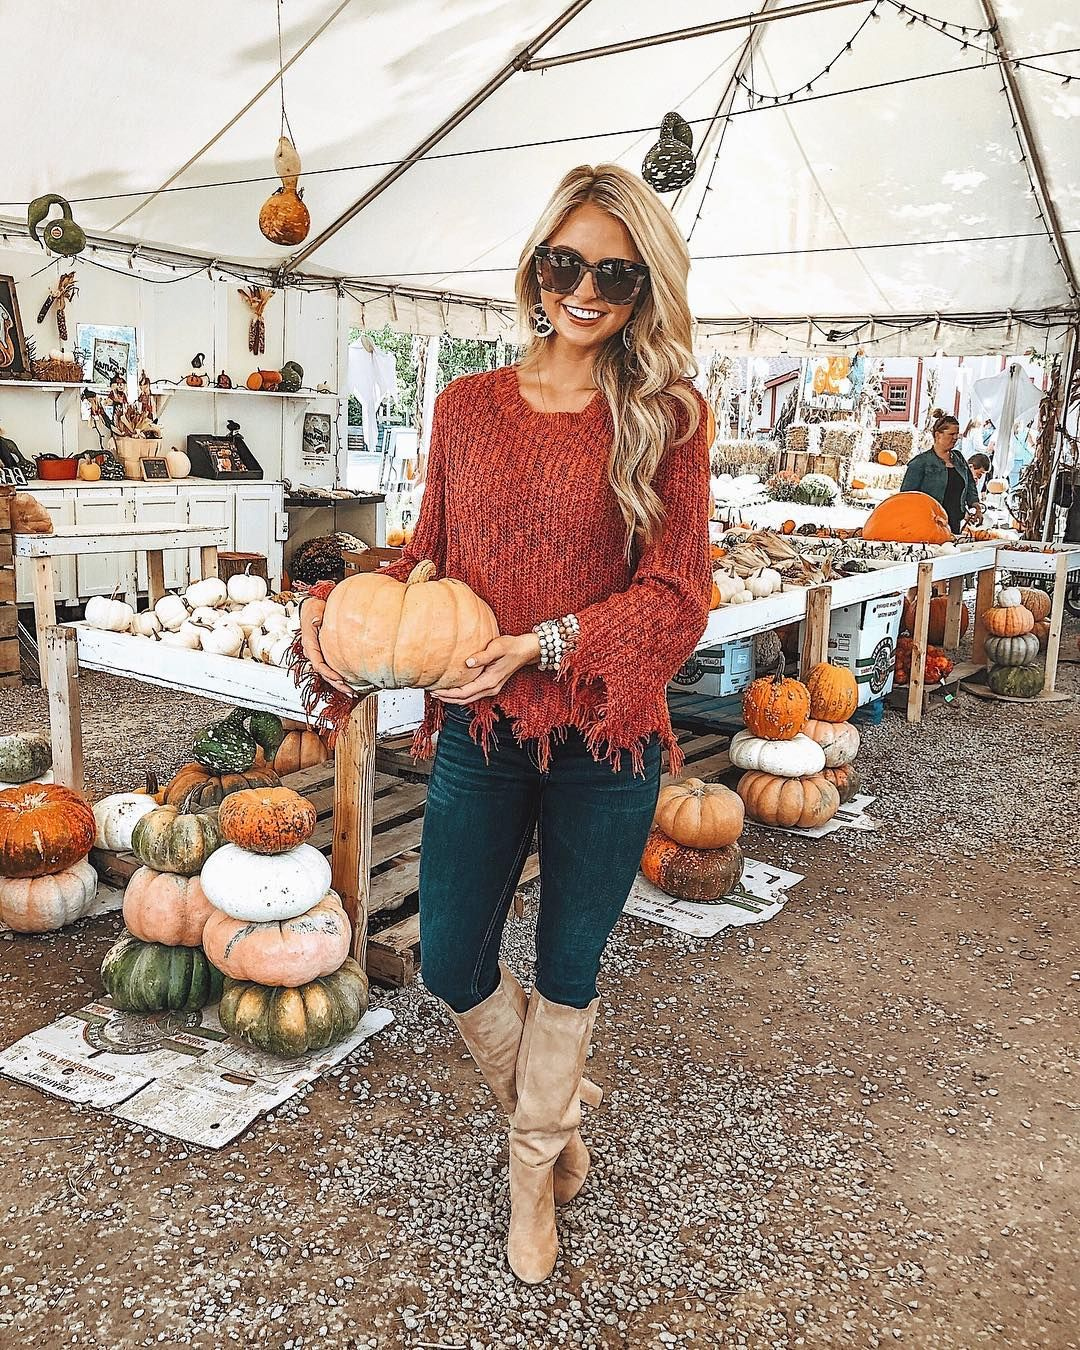 "Shea Leigh Mills on Instagram: ""Officially add me to the list of girls posting pumpkin patch photos in an outfit that is not at all suitable for picking up & carrying dirt…"" #pumpkinpatch"